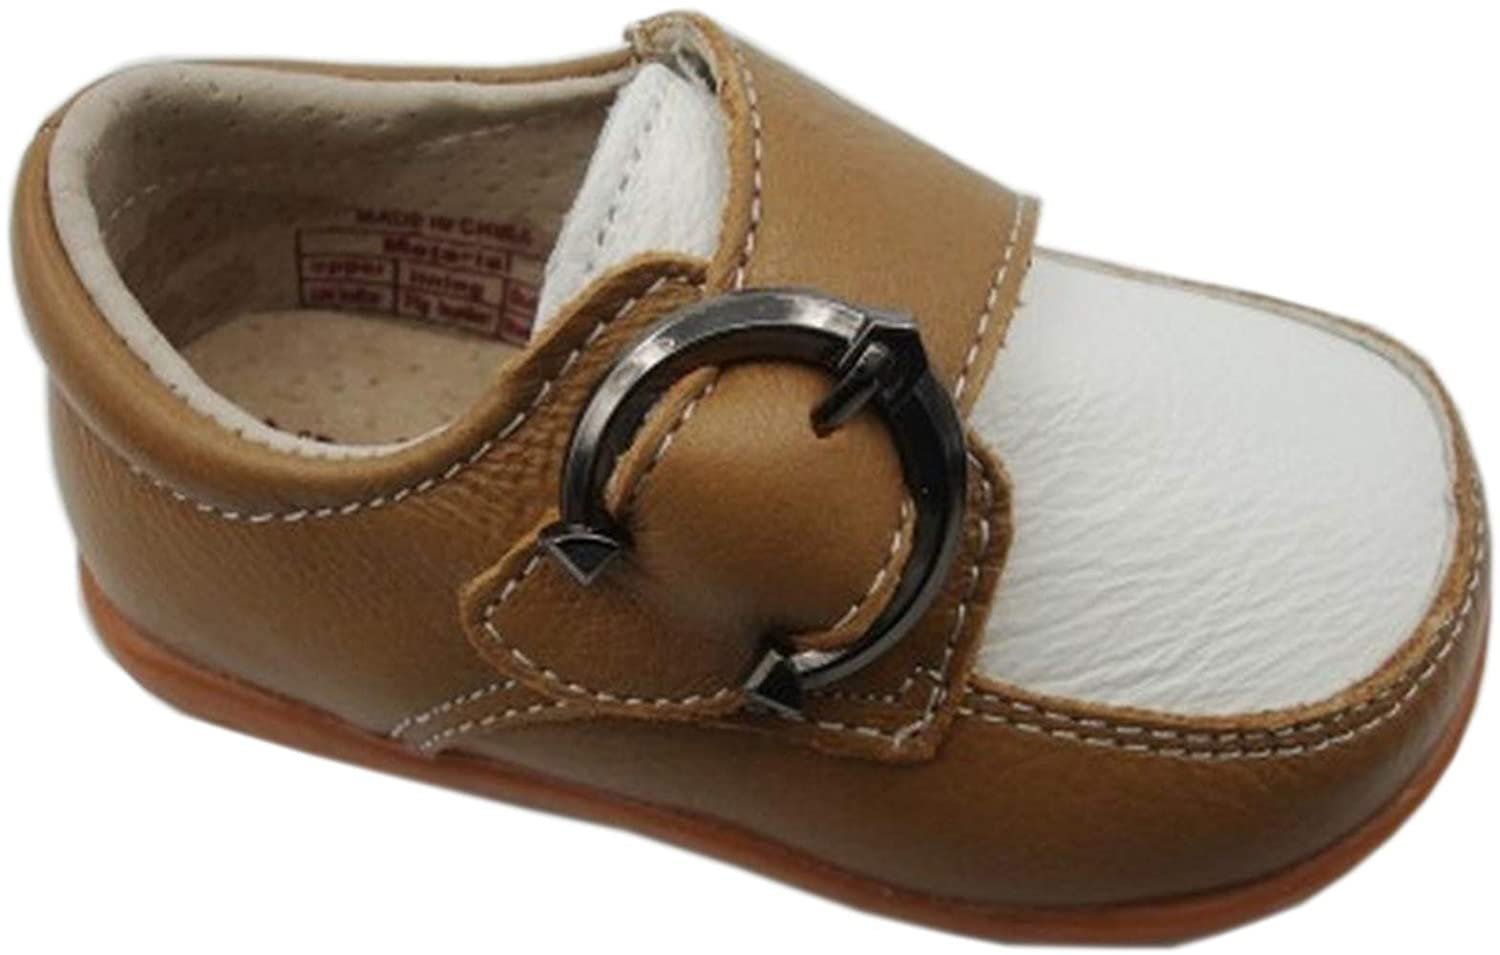 Jiazibb Baby Boys Velcro Genuine Cow Leather Buckle Toddler First Walkers Shoes Sneakers